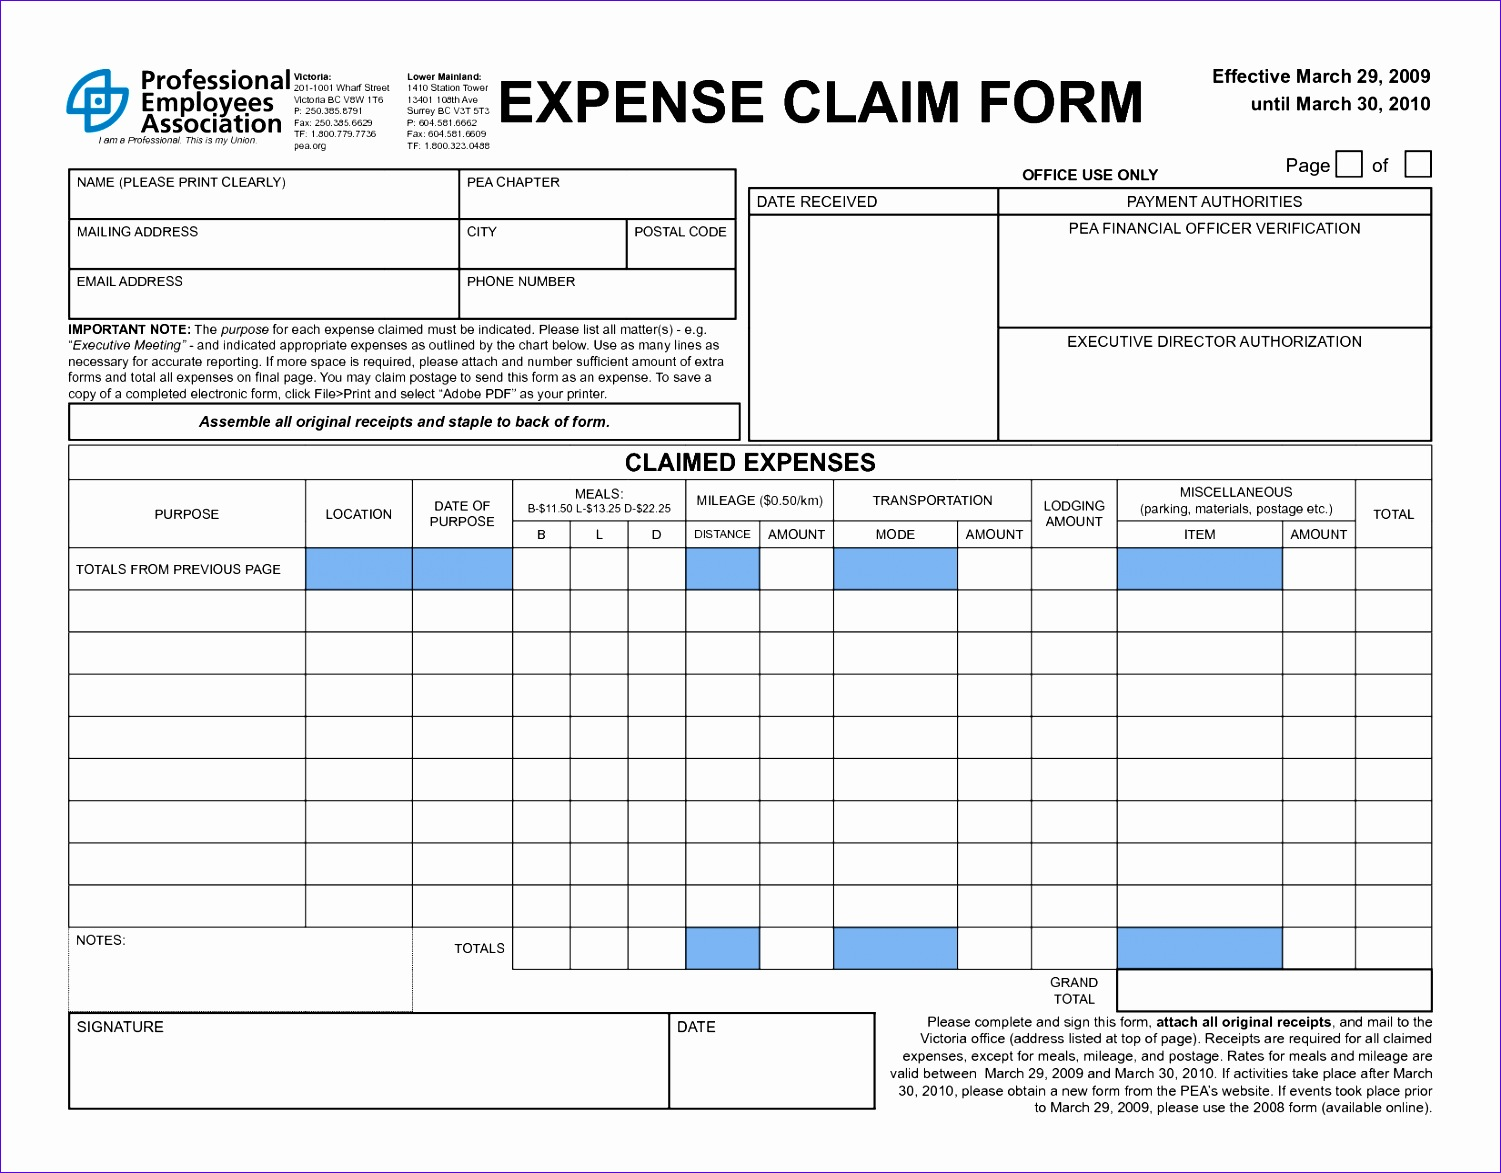 expense clain form template preview 3 fit=1650 1275